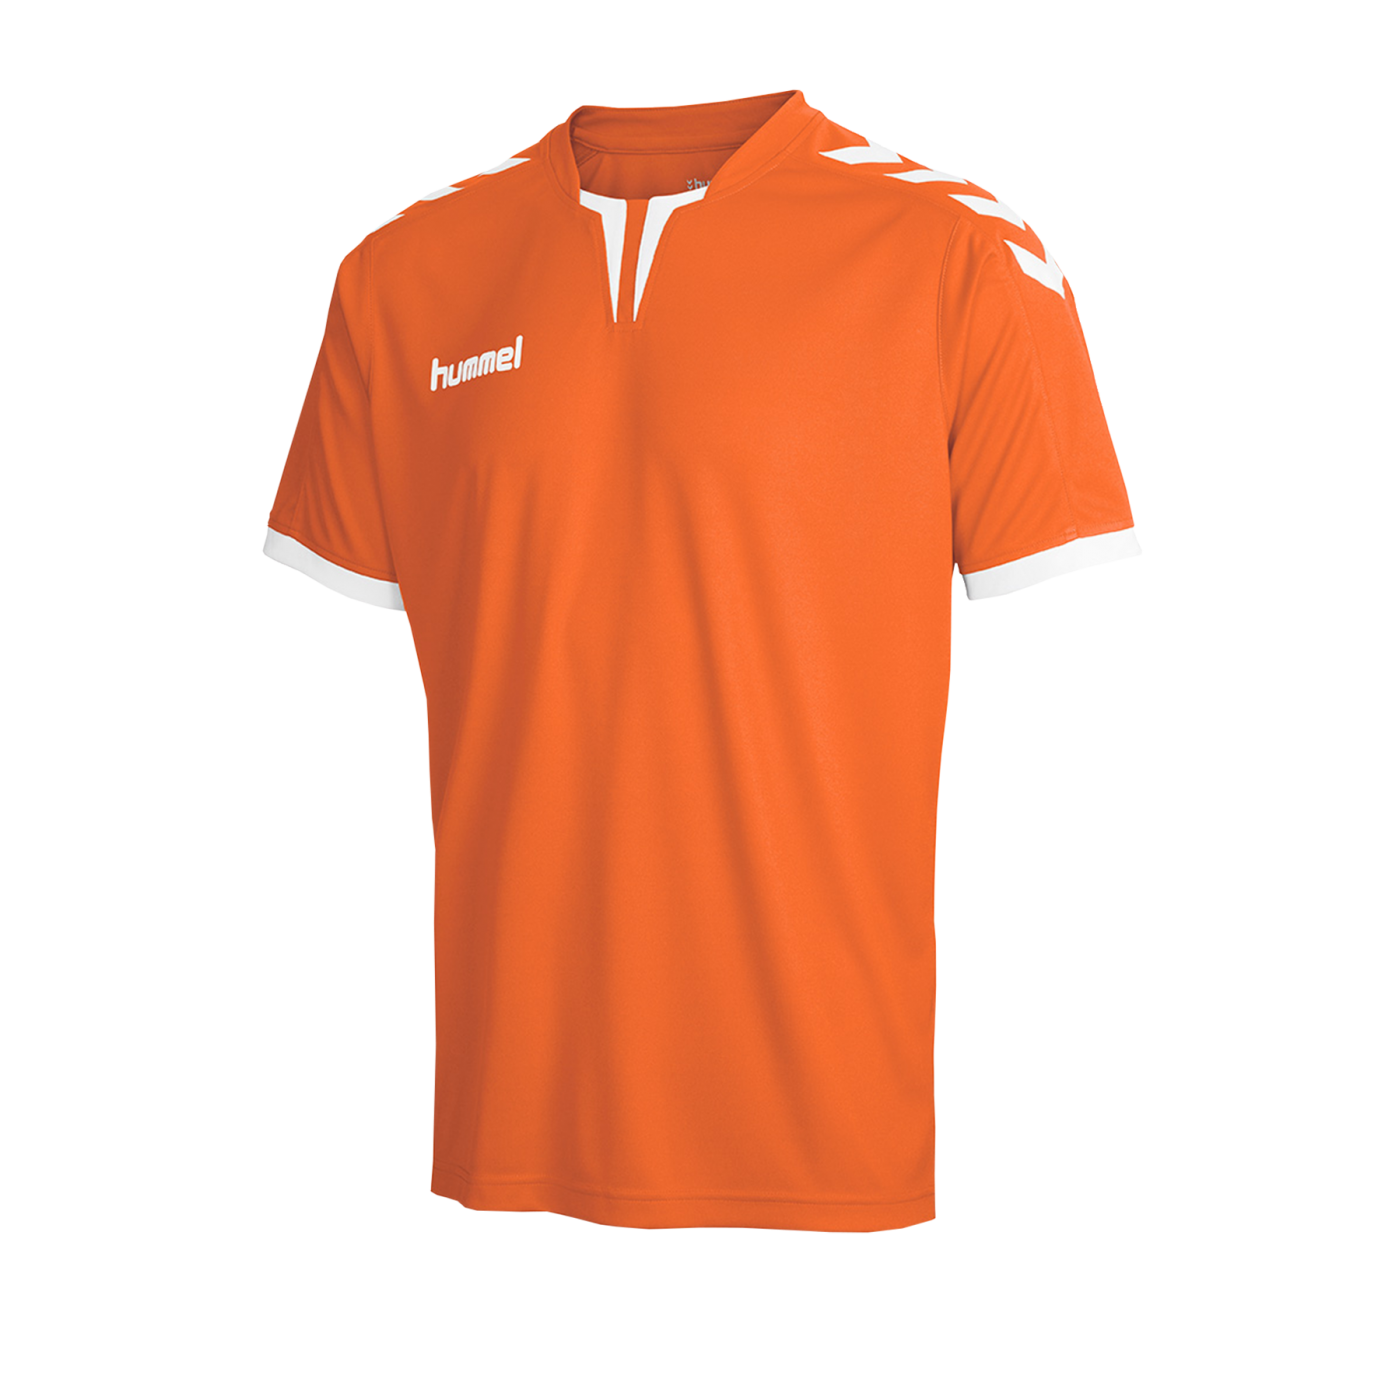 Hummel Core Trikot kurzarm Kids Orange F5010 - orange